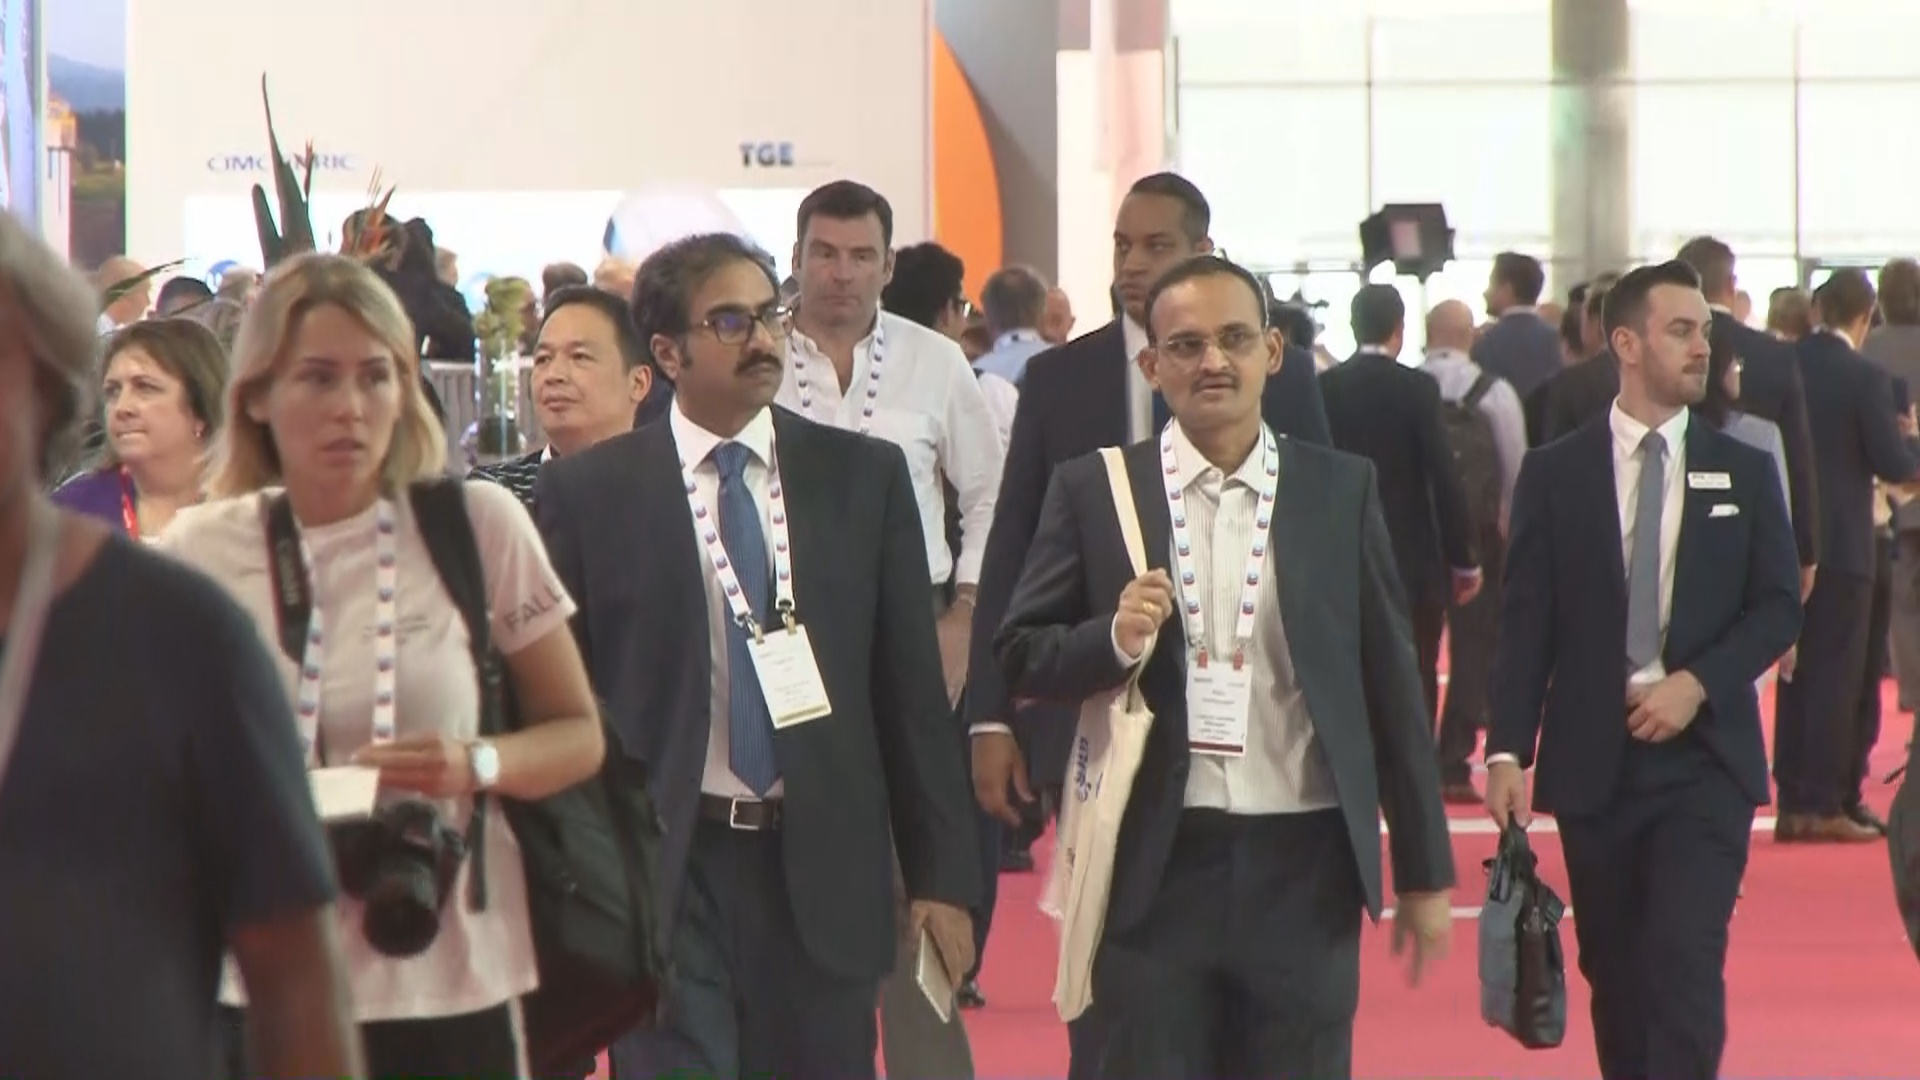 Biggest fair on natural gas in the world kicks off in Barcelona